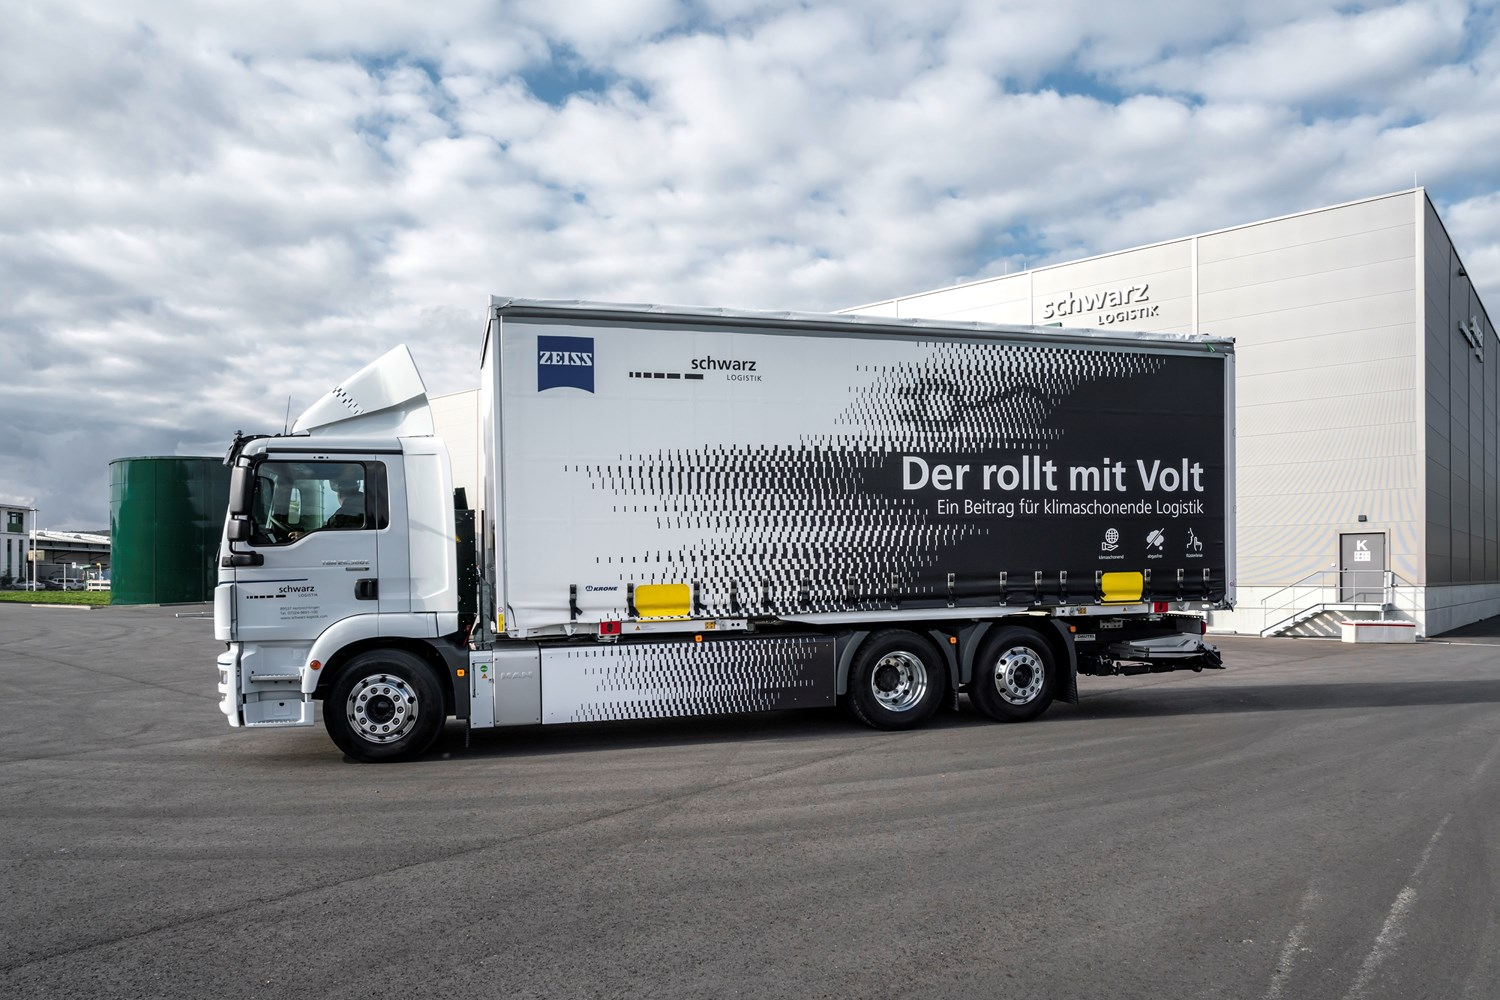 The new electric truck of Schwarz Logistik GmbH will be used to supply ZEISS in Oberkochen